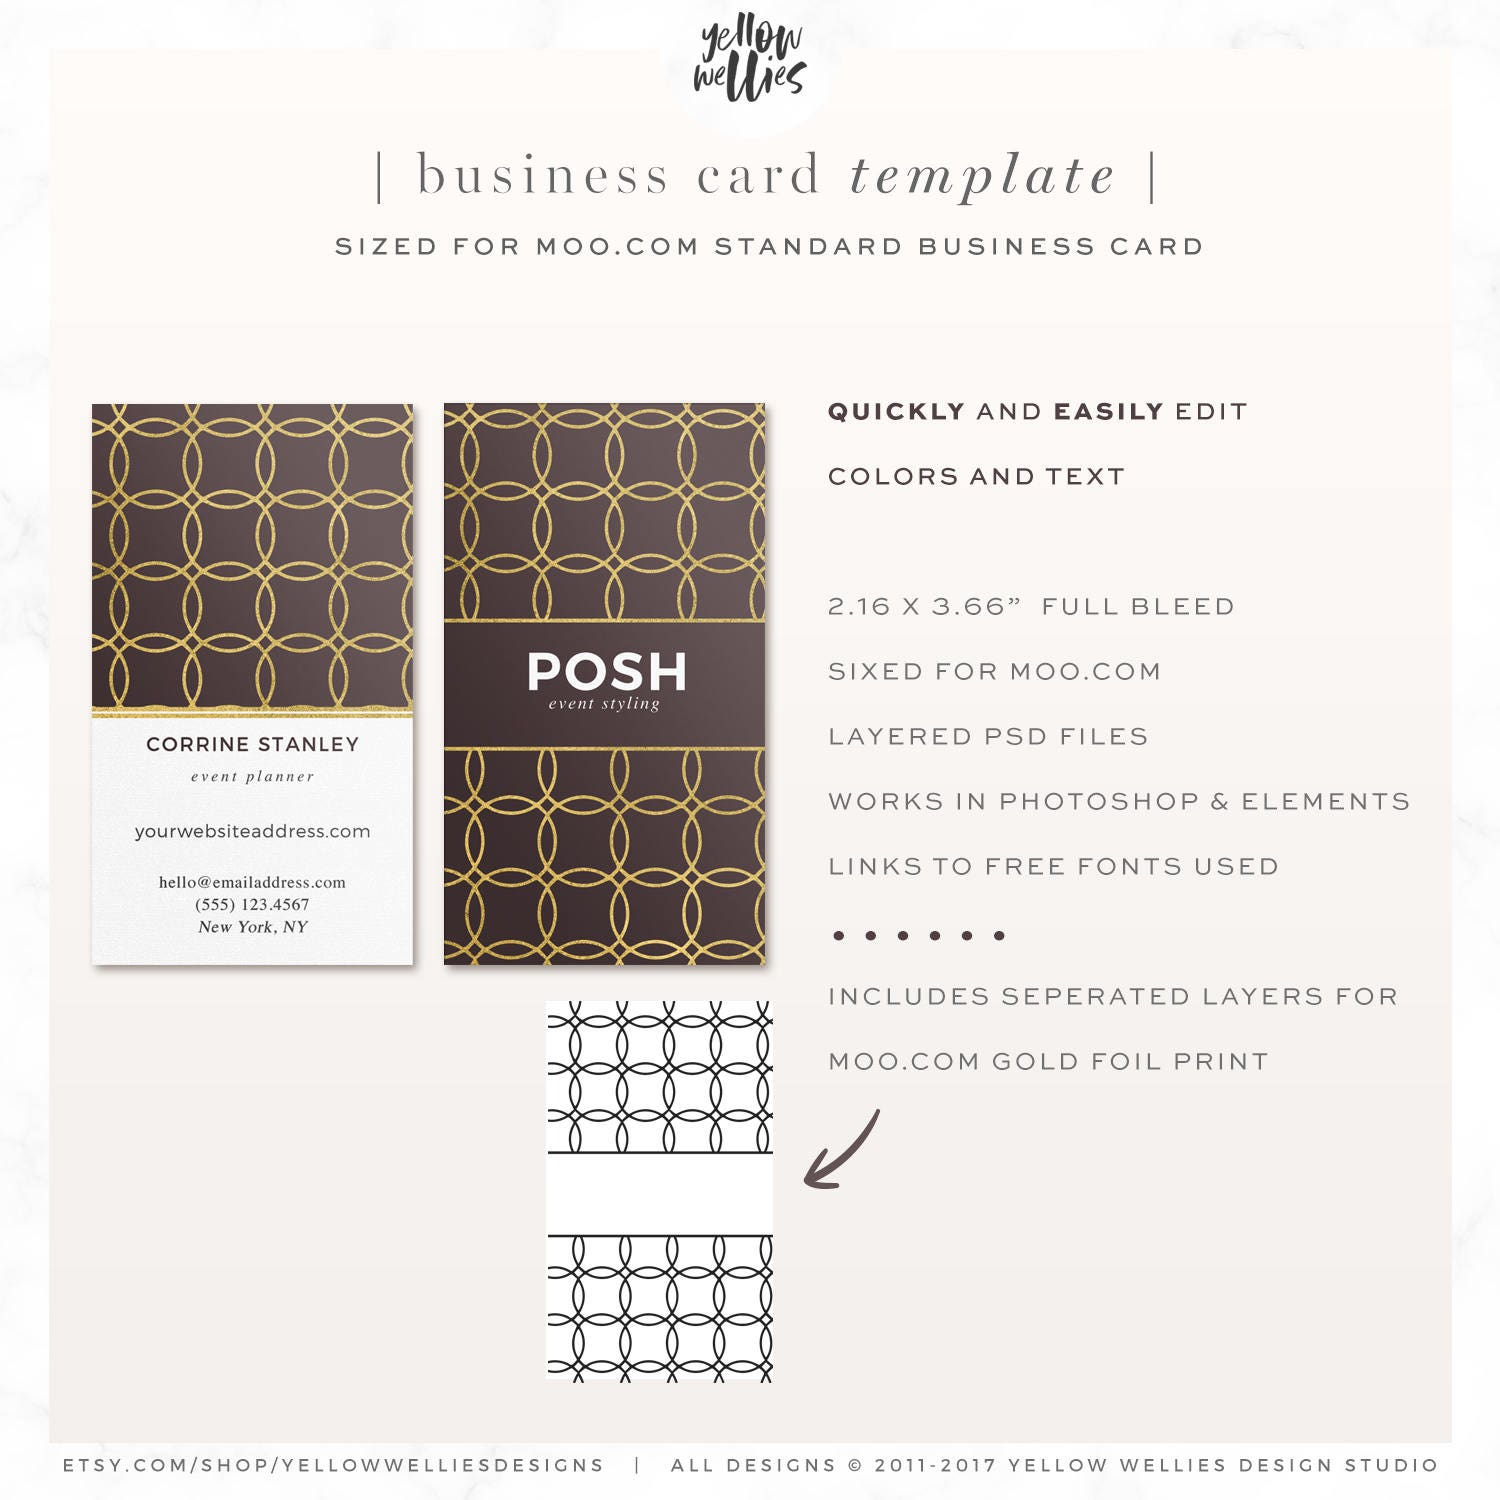 Gold foil business card template moo template moo gold foil gold foil business card template moo template moo gold foil photoshop template reheart Images